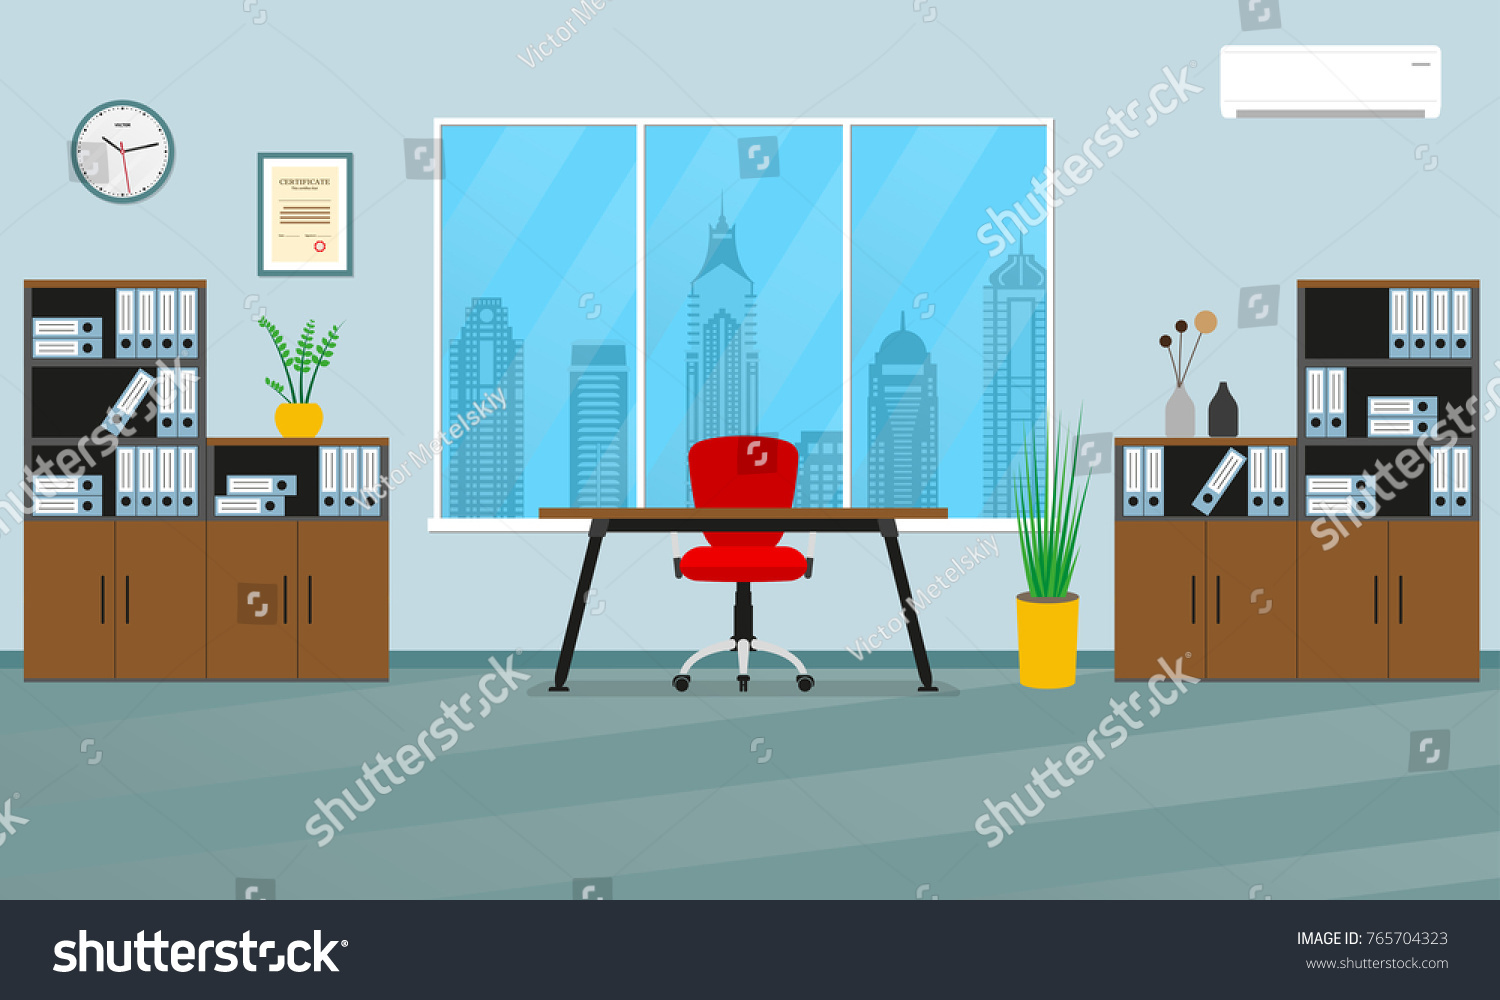 Office Interior Concept. Modern Business Workspace With Office Furniture:  Chair, Desk, Bookcase